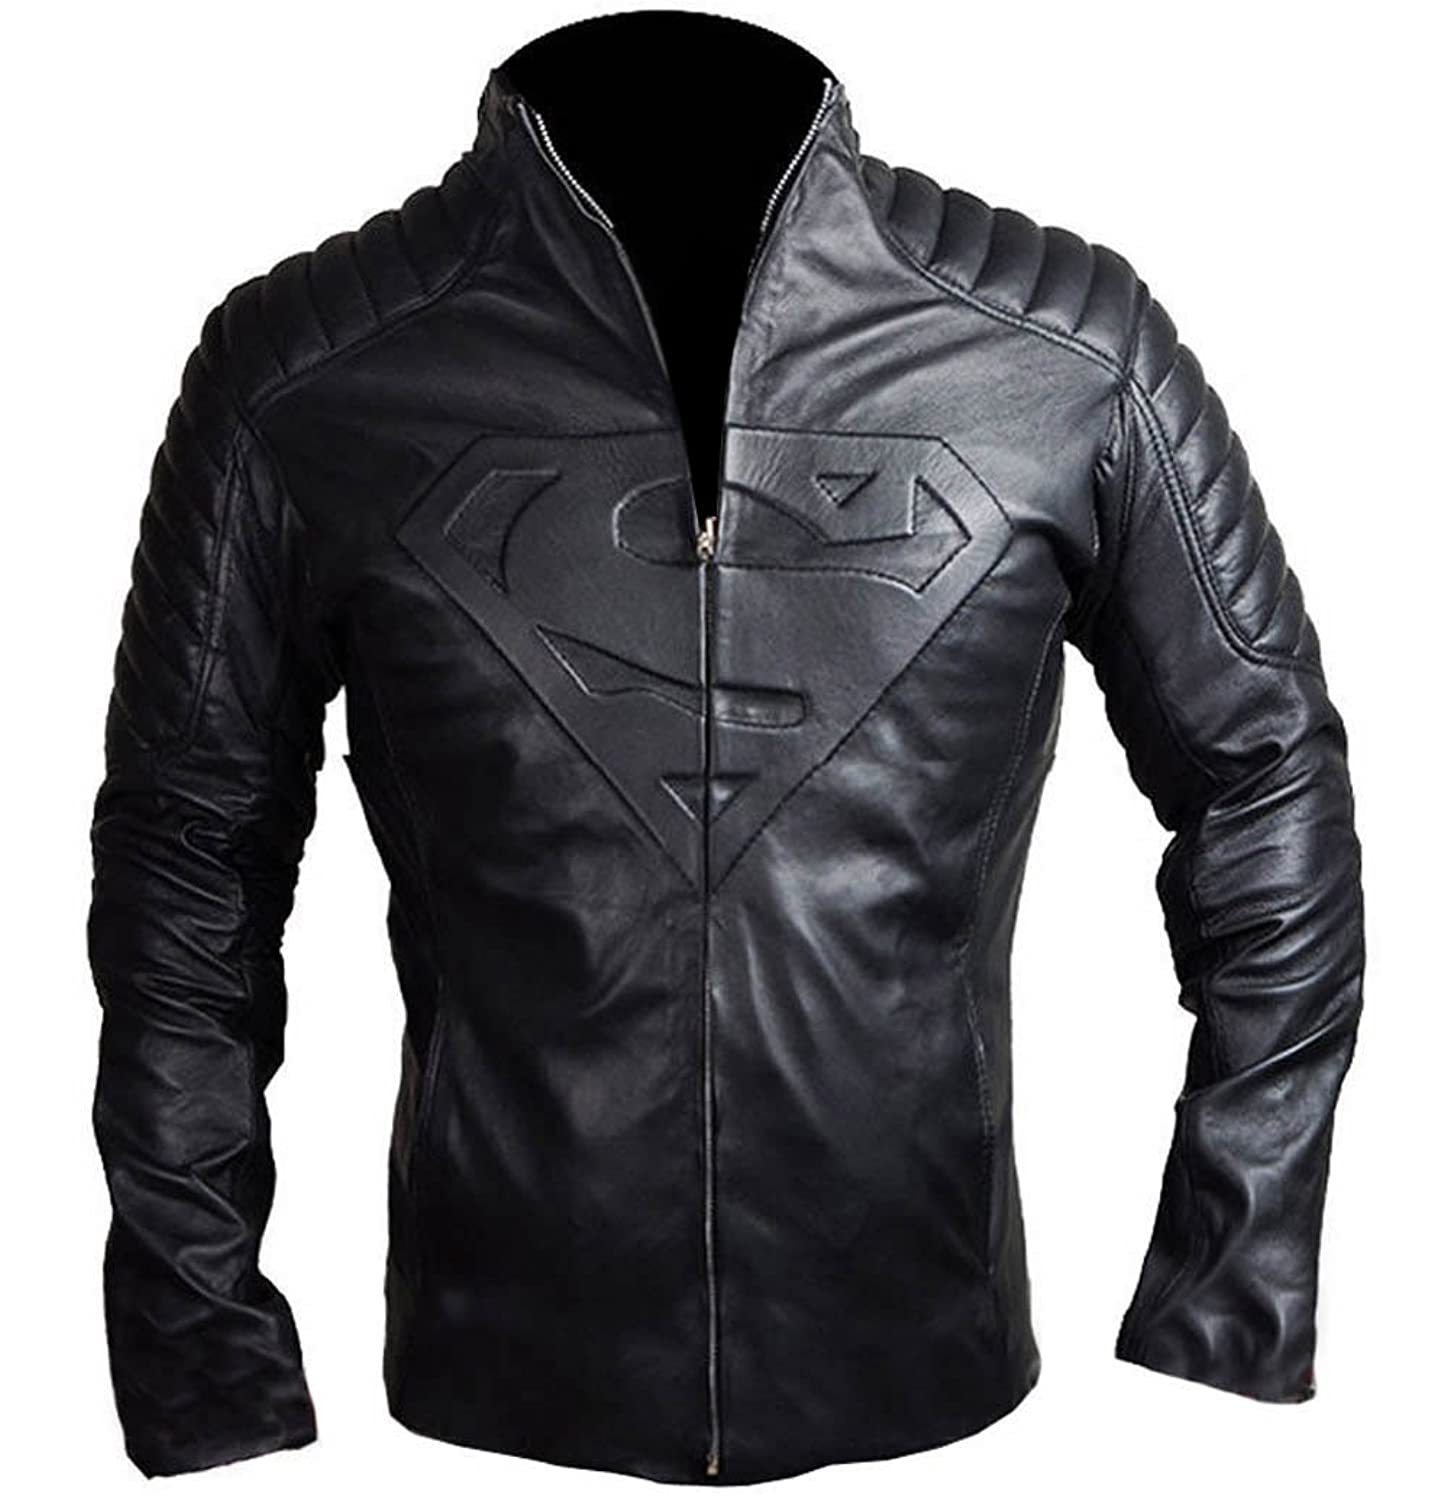 Superman Smallville Black Men's Biker Leather Jacket